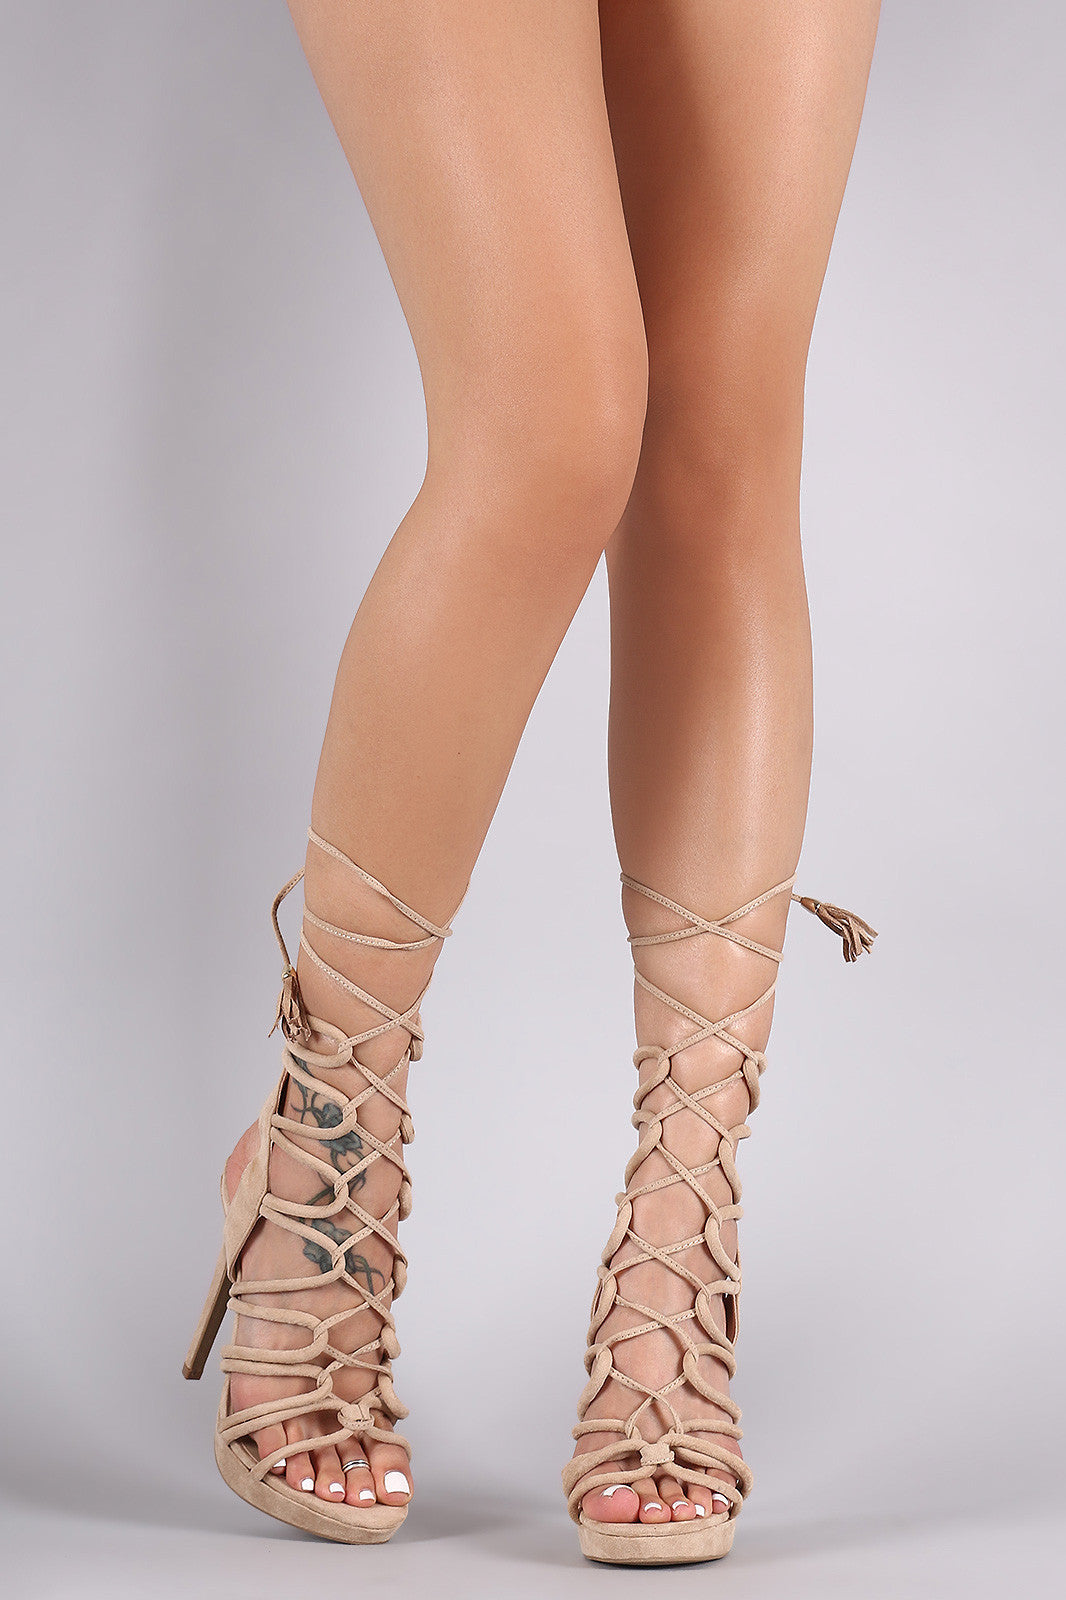 Wild Diva Lounge Suede Strappy Loop Lace-Up Platform Heel - Thick 'N' Curvy Shop - 7